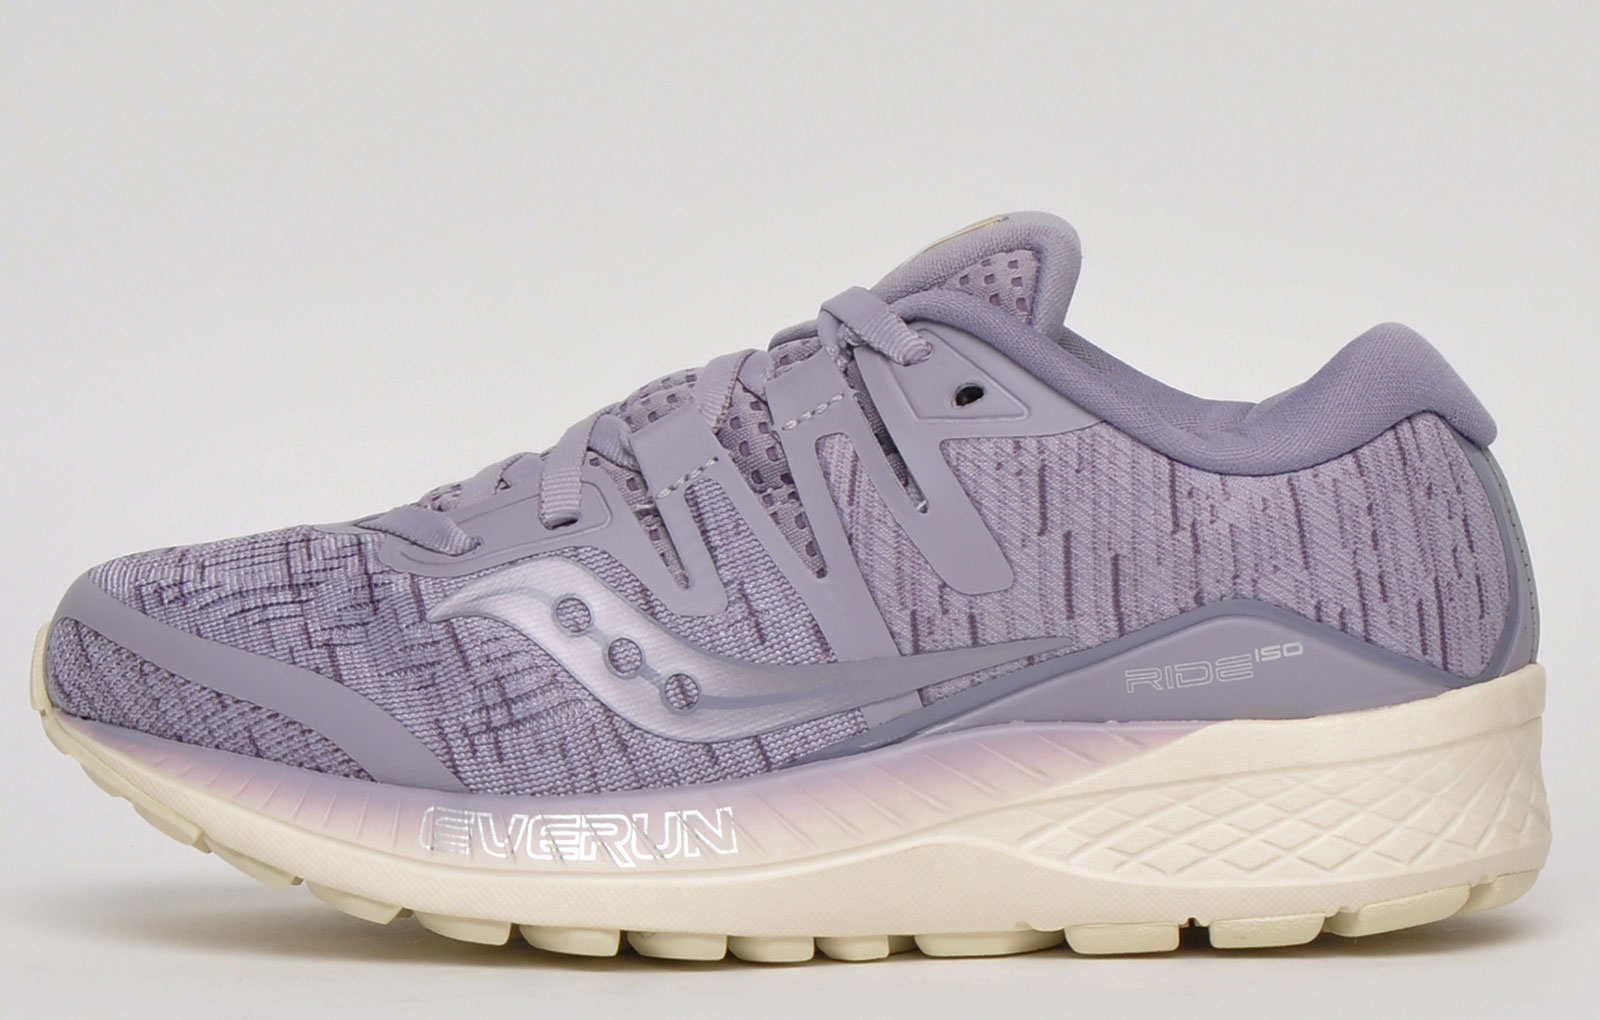 low priced c5a18 c6e1b Saucony Trainers - Womens | Saucony Running Shoes Sale